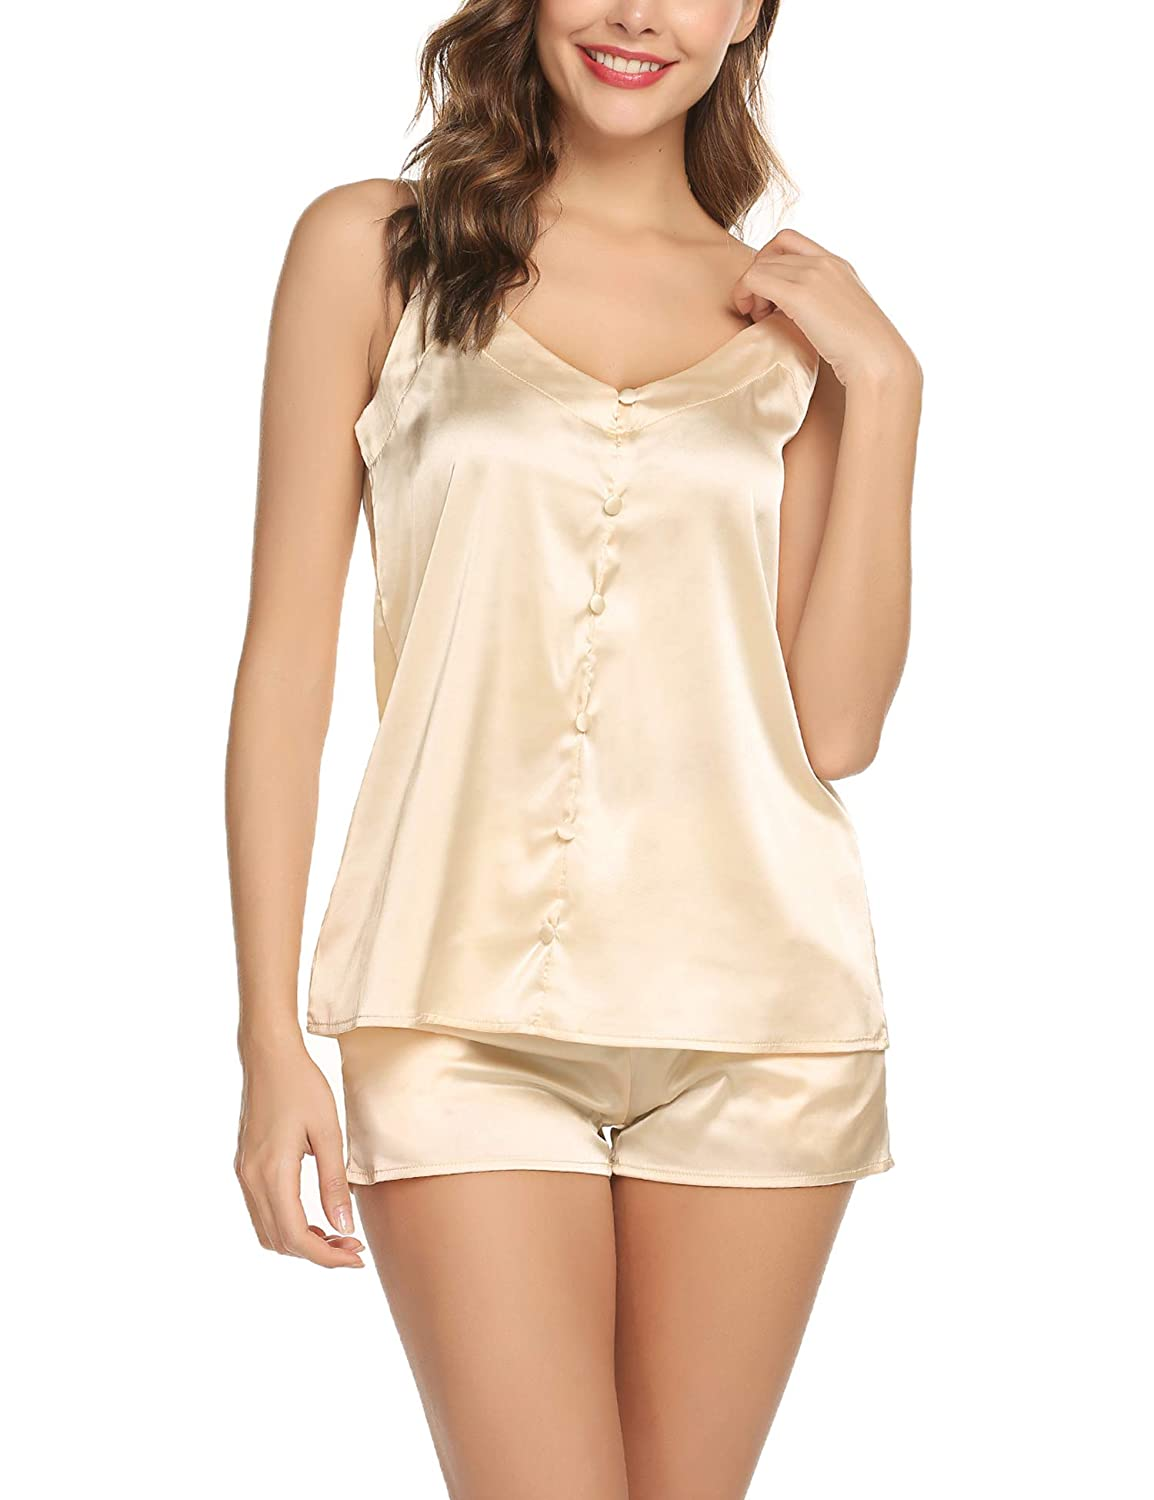 Womens Short Satin Pajamas Set Sexy Camisole Sets Silk Lingerie Sleepwear  at Amazon Women s Clothing store  95a6247a9ac0